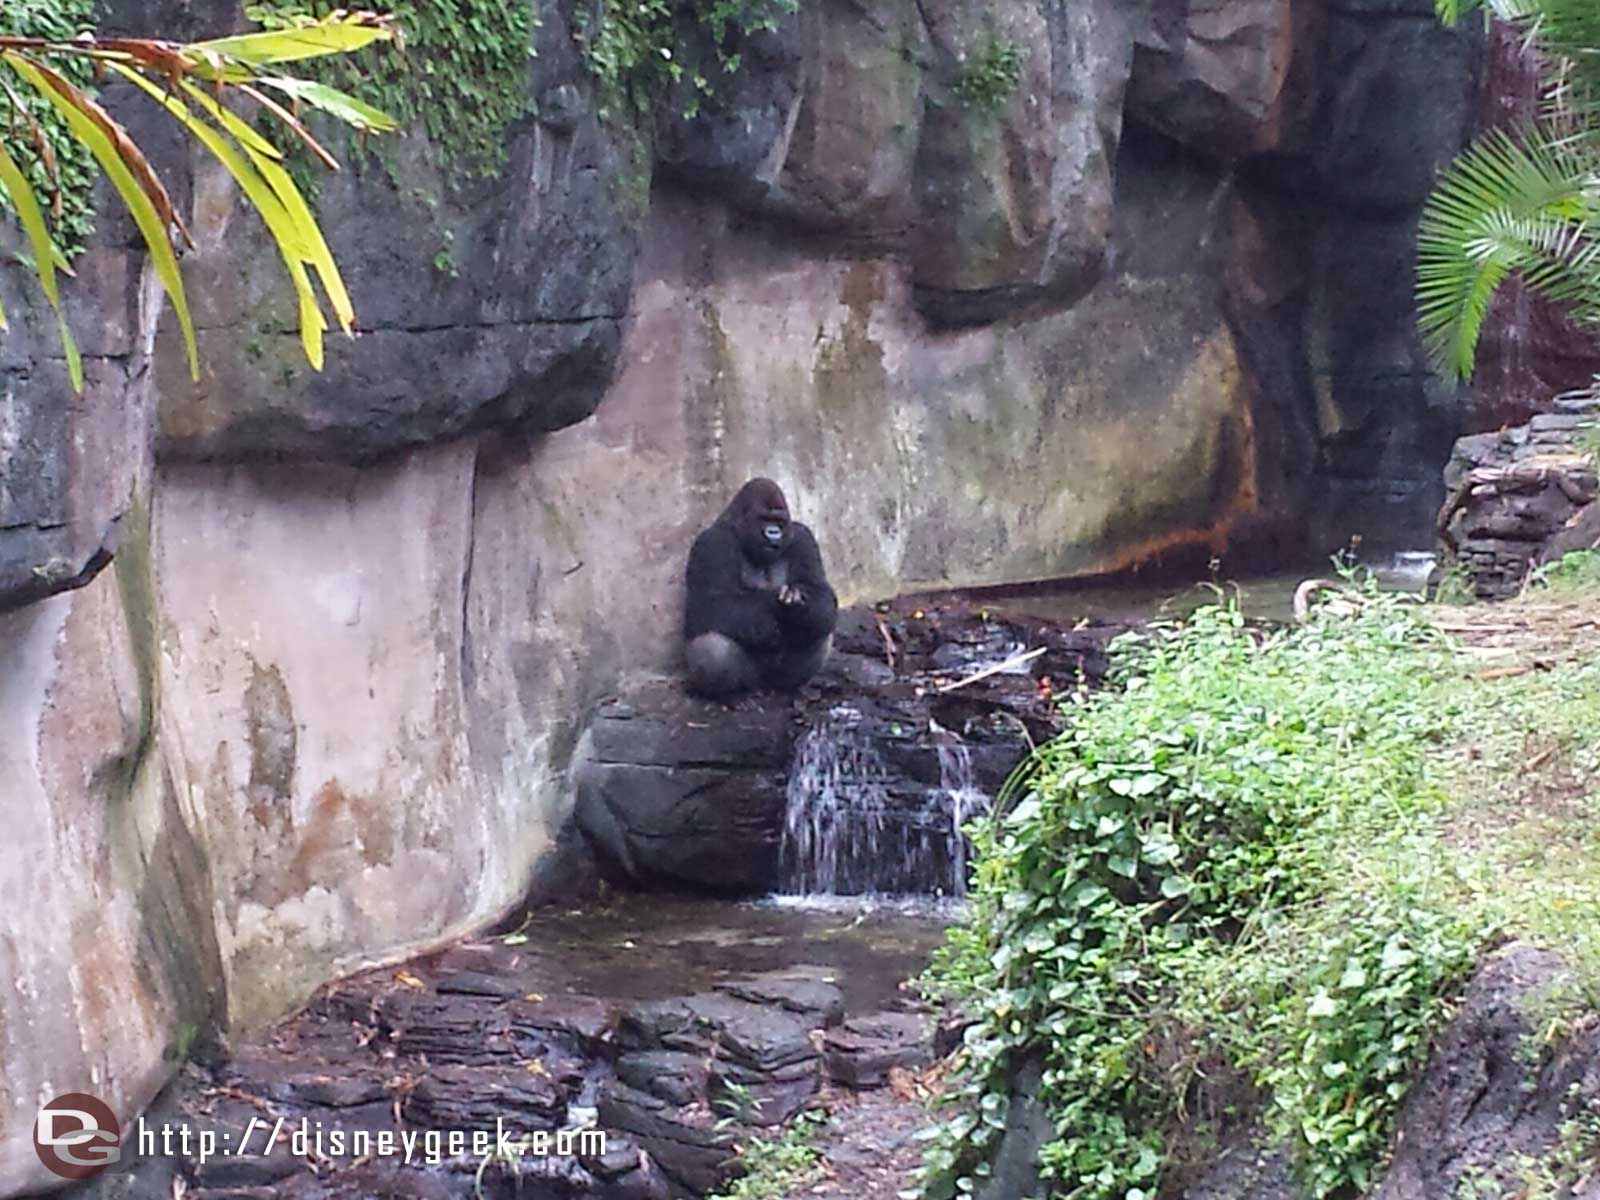 Pangani Forest – A male gorilla sitting in a stream #WDW